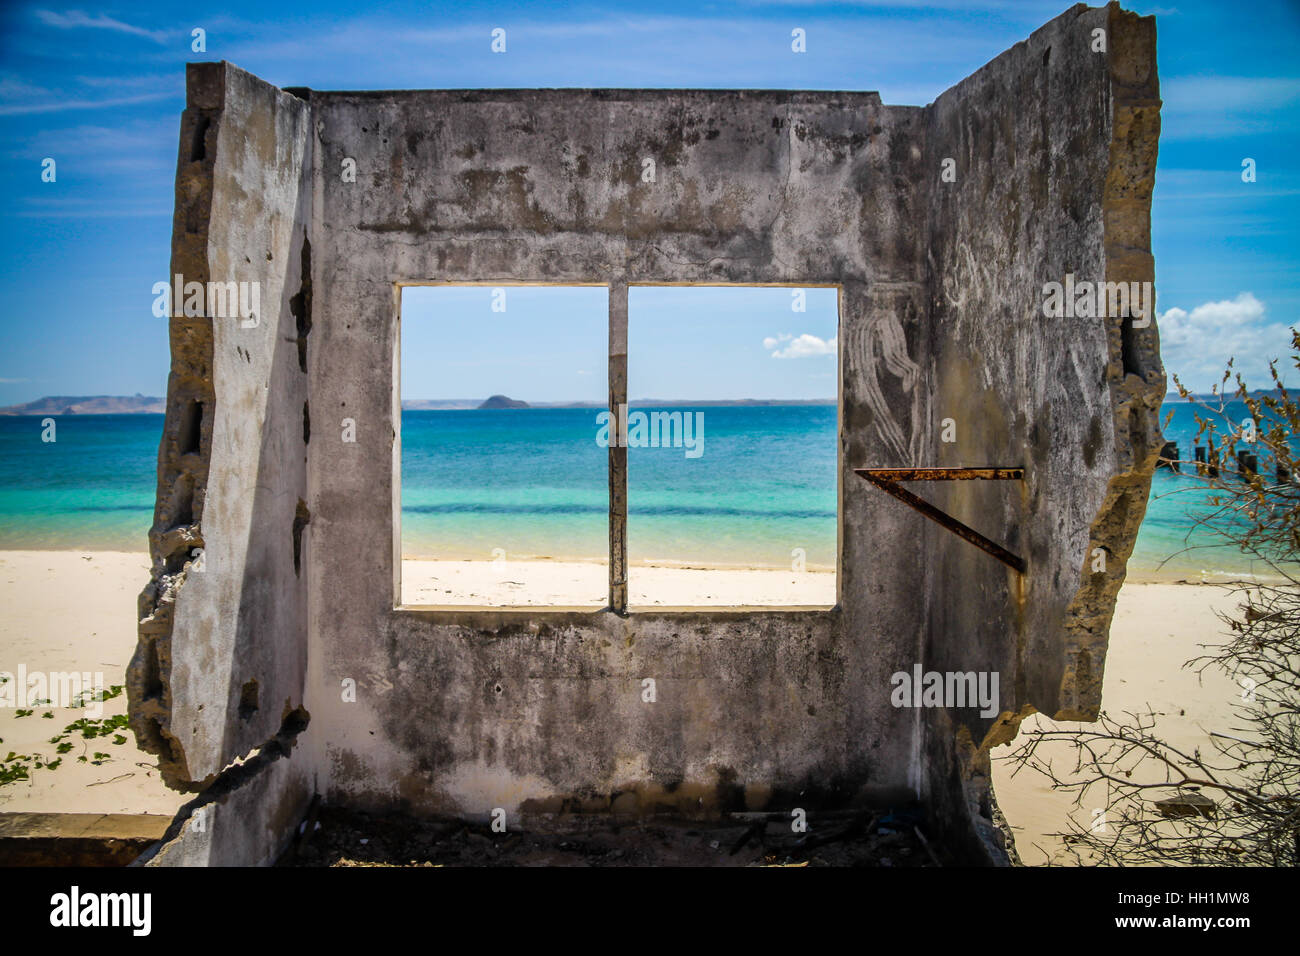 Remains of the building destroyed by the ocean on the northern coast of Madagascar, near Diego Suarez - Stock Image